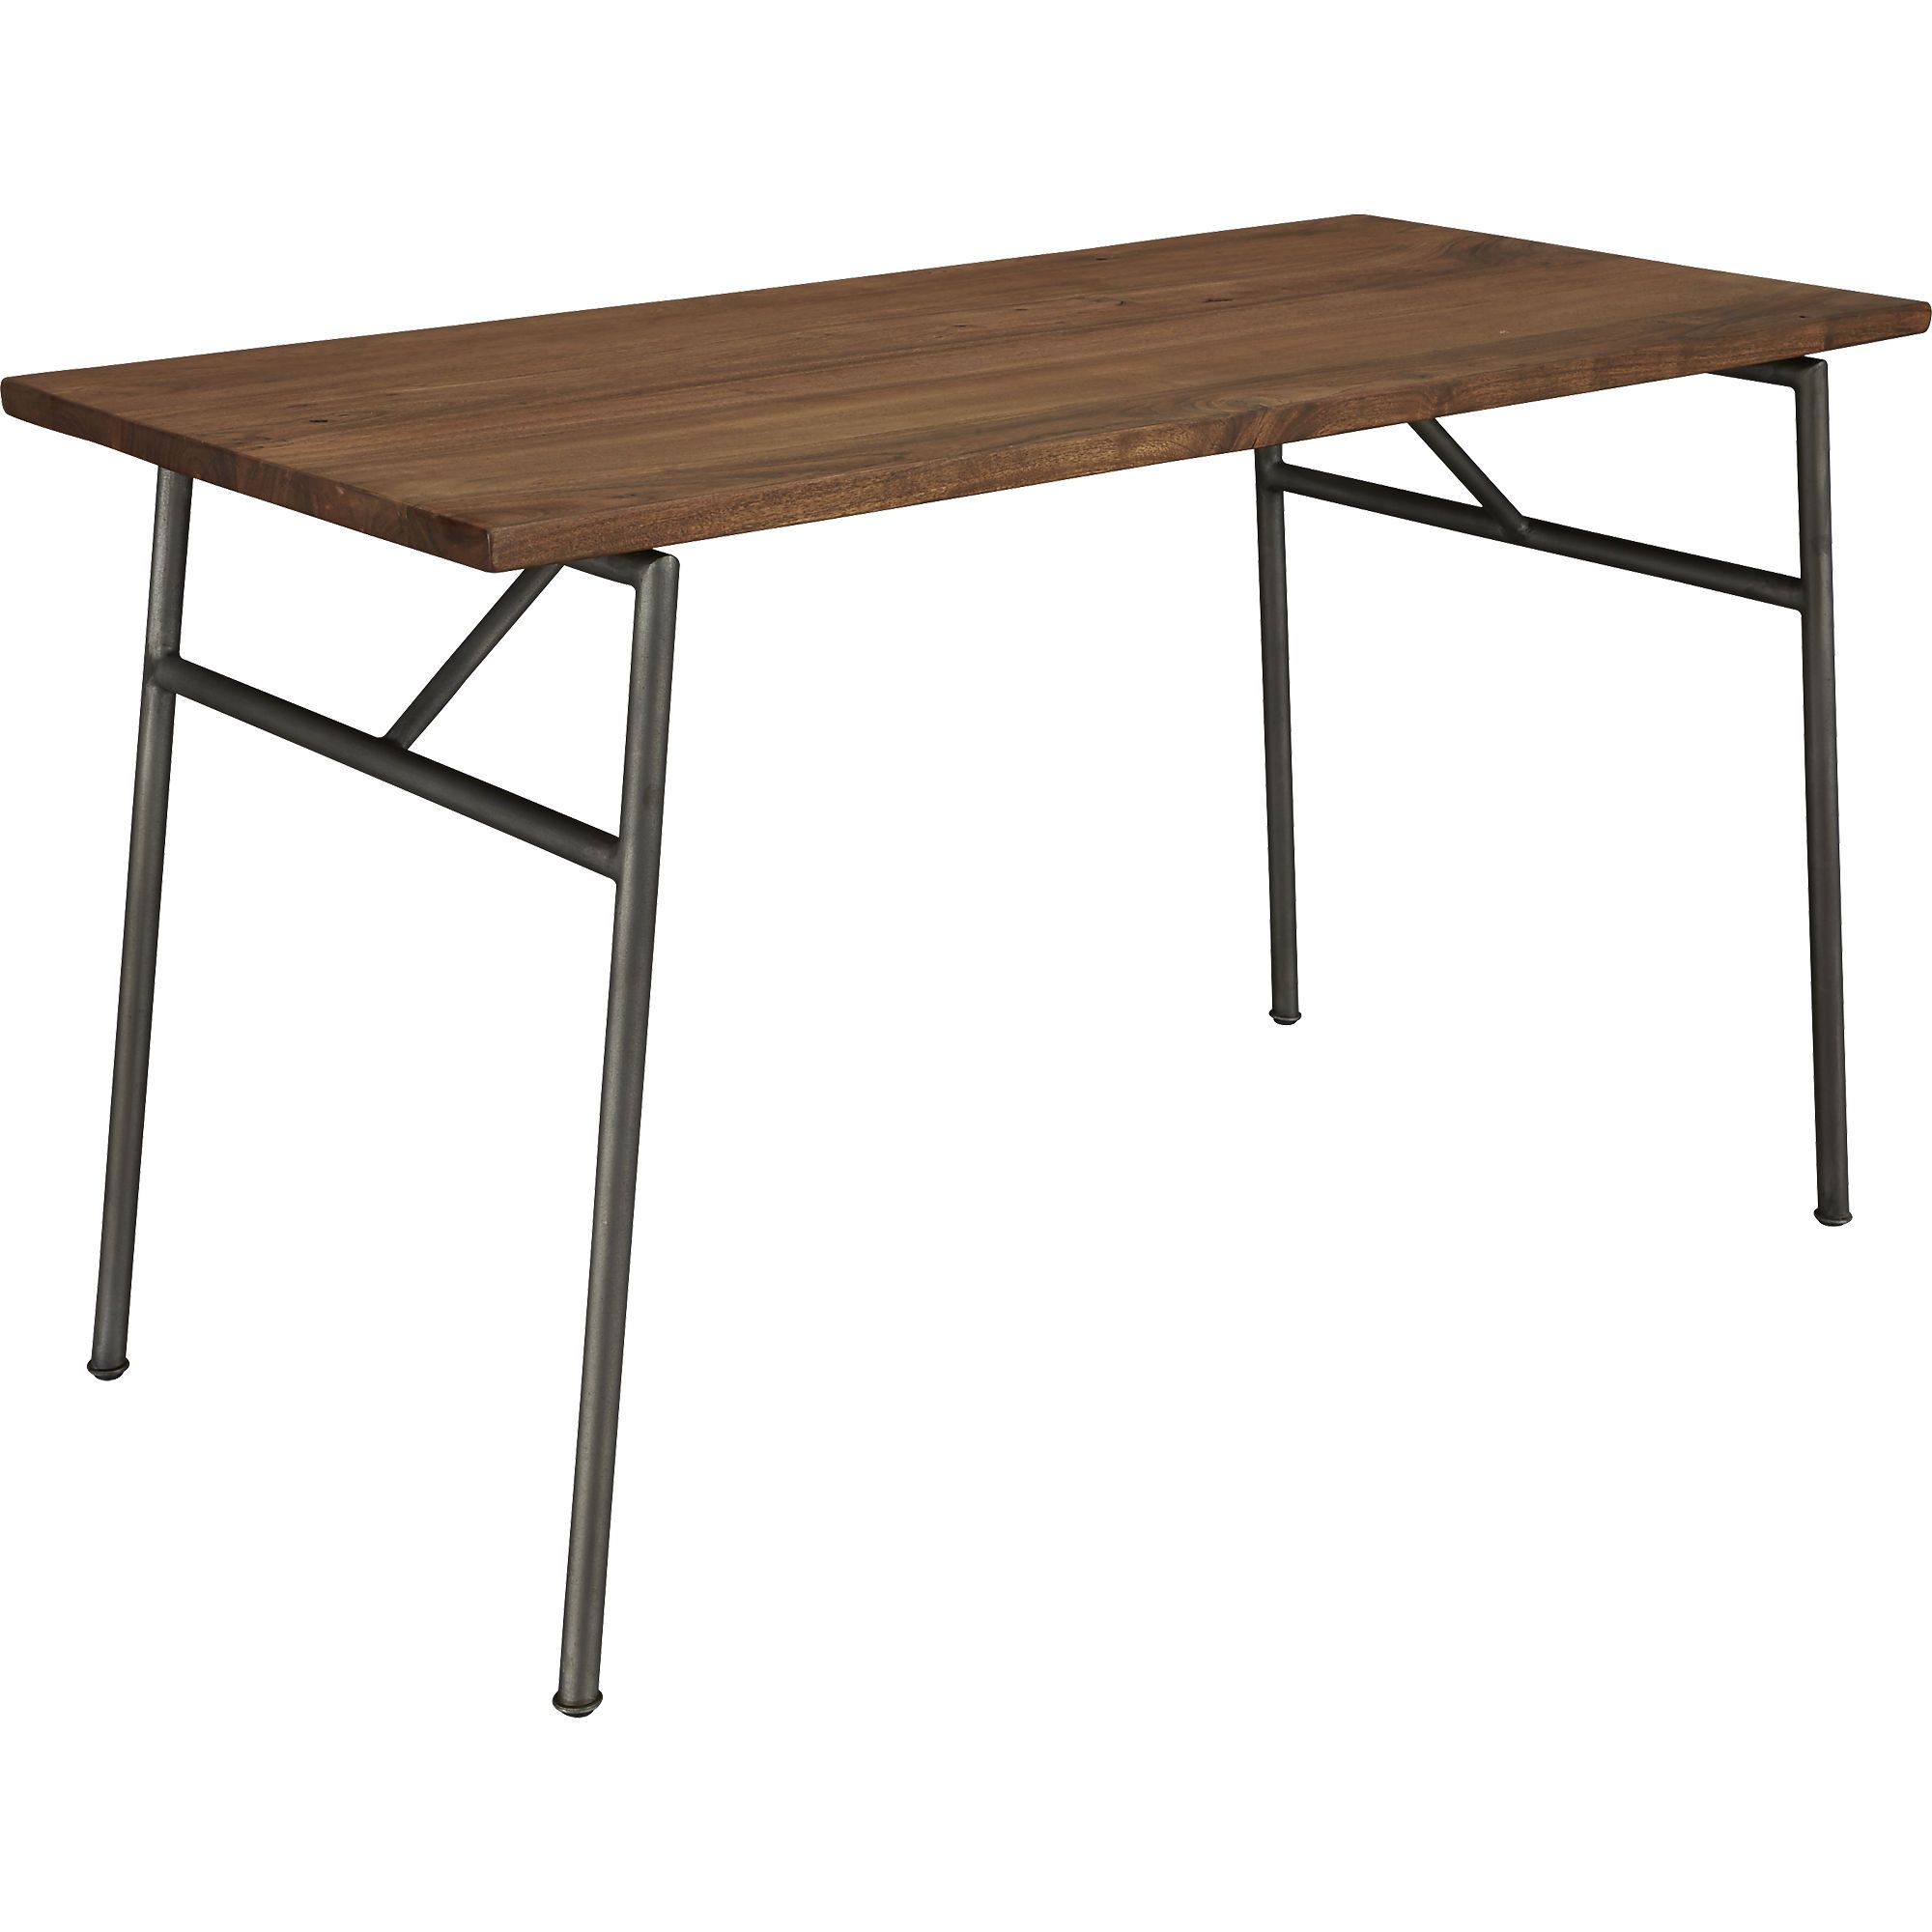 Lecture Desk In Office Furniture Cb2 Modern Home Office Furniture Office Furniture Modern Furniture